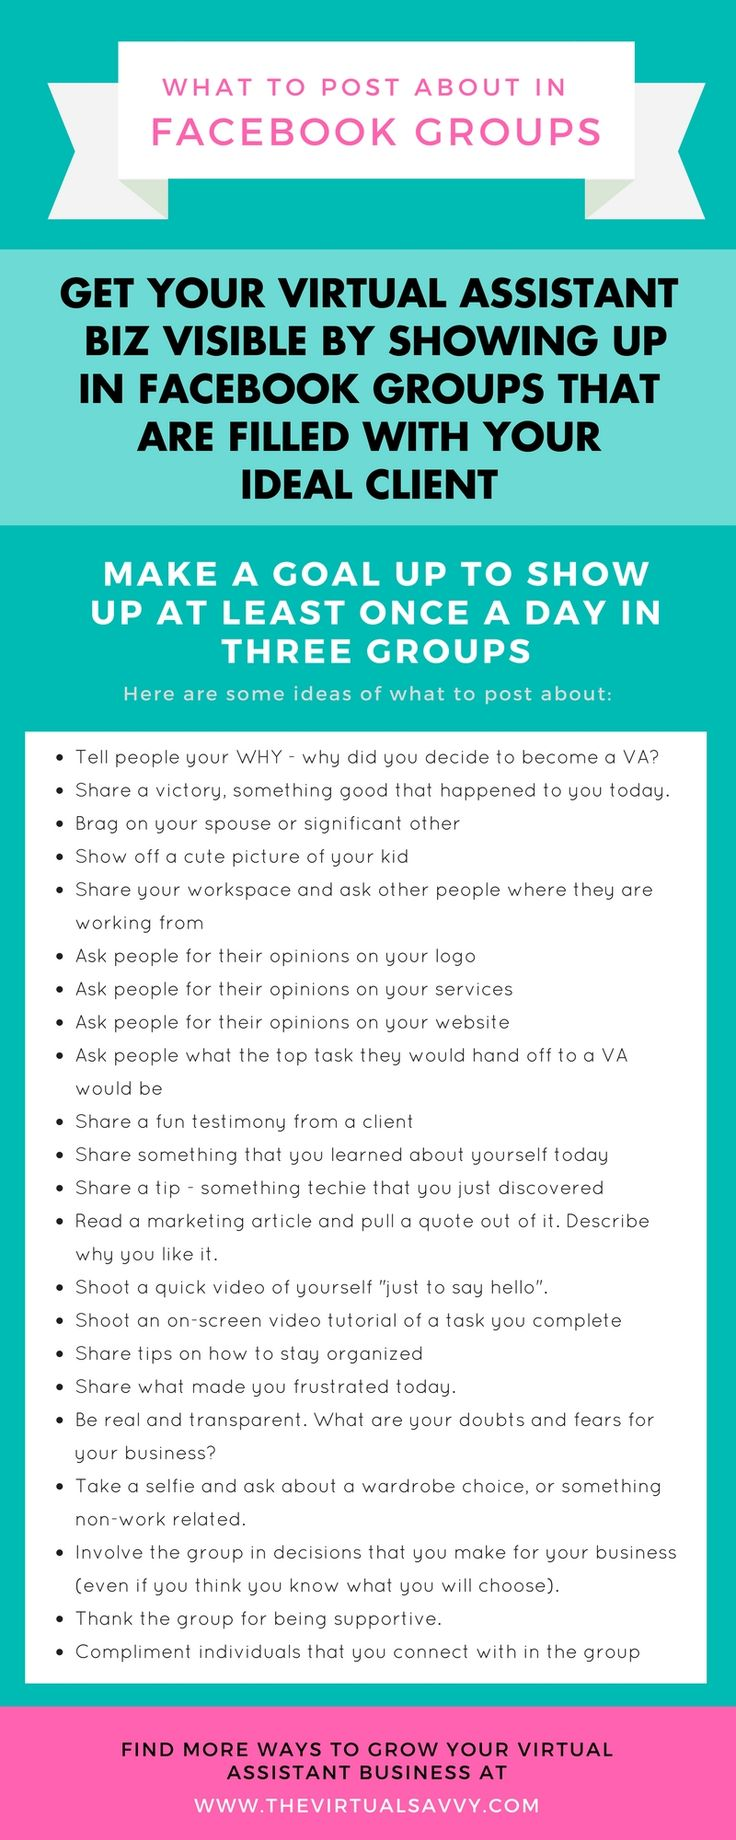 Get eyes on your VA biz by hustling in Facebook groups filled with your ideal clients! Here are tons of ideas to get you started... via The Virtual Savvy